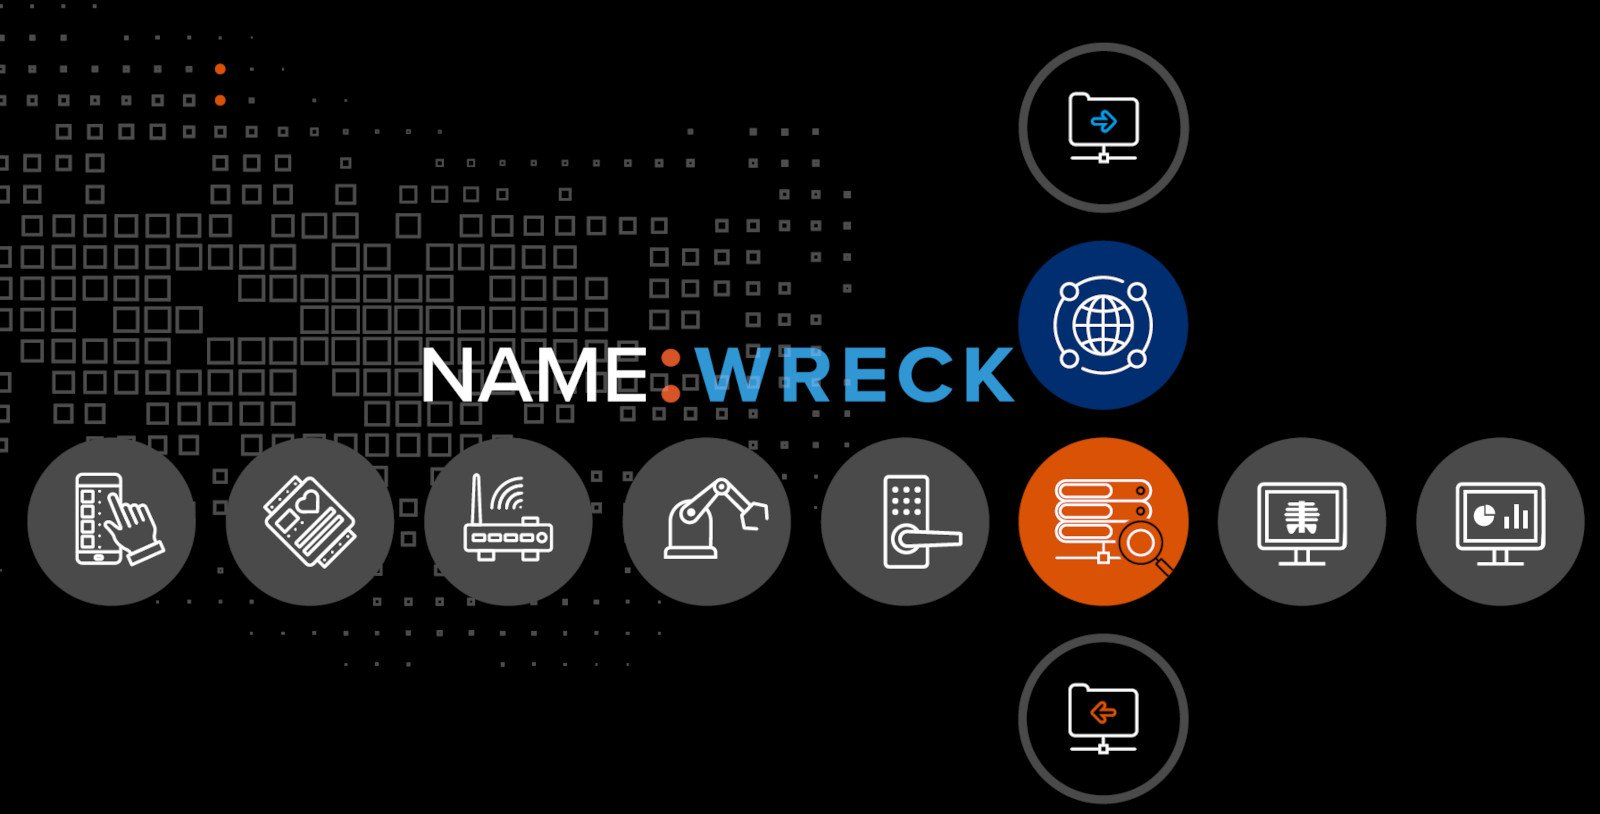 NAME:WRECK DNS Vulnerabilities Affect Over 100 Million Devices